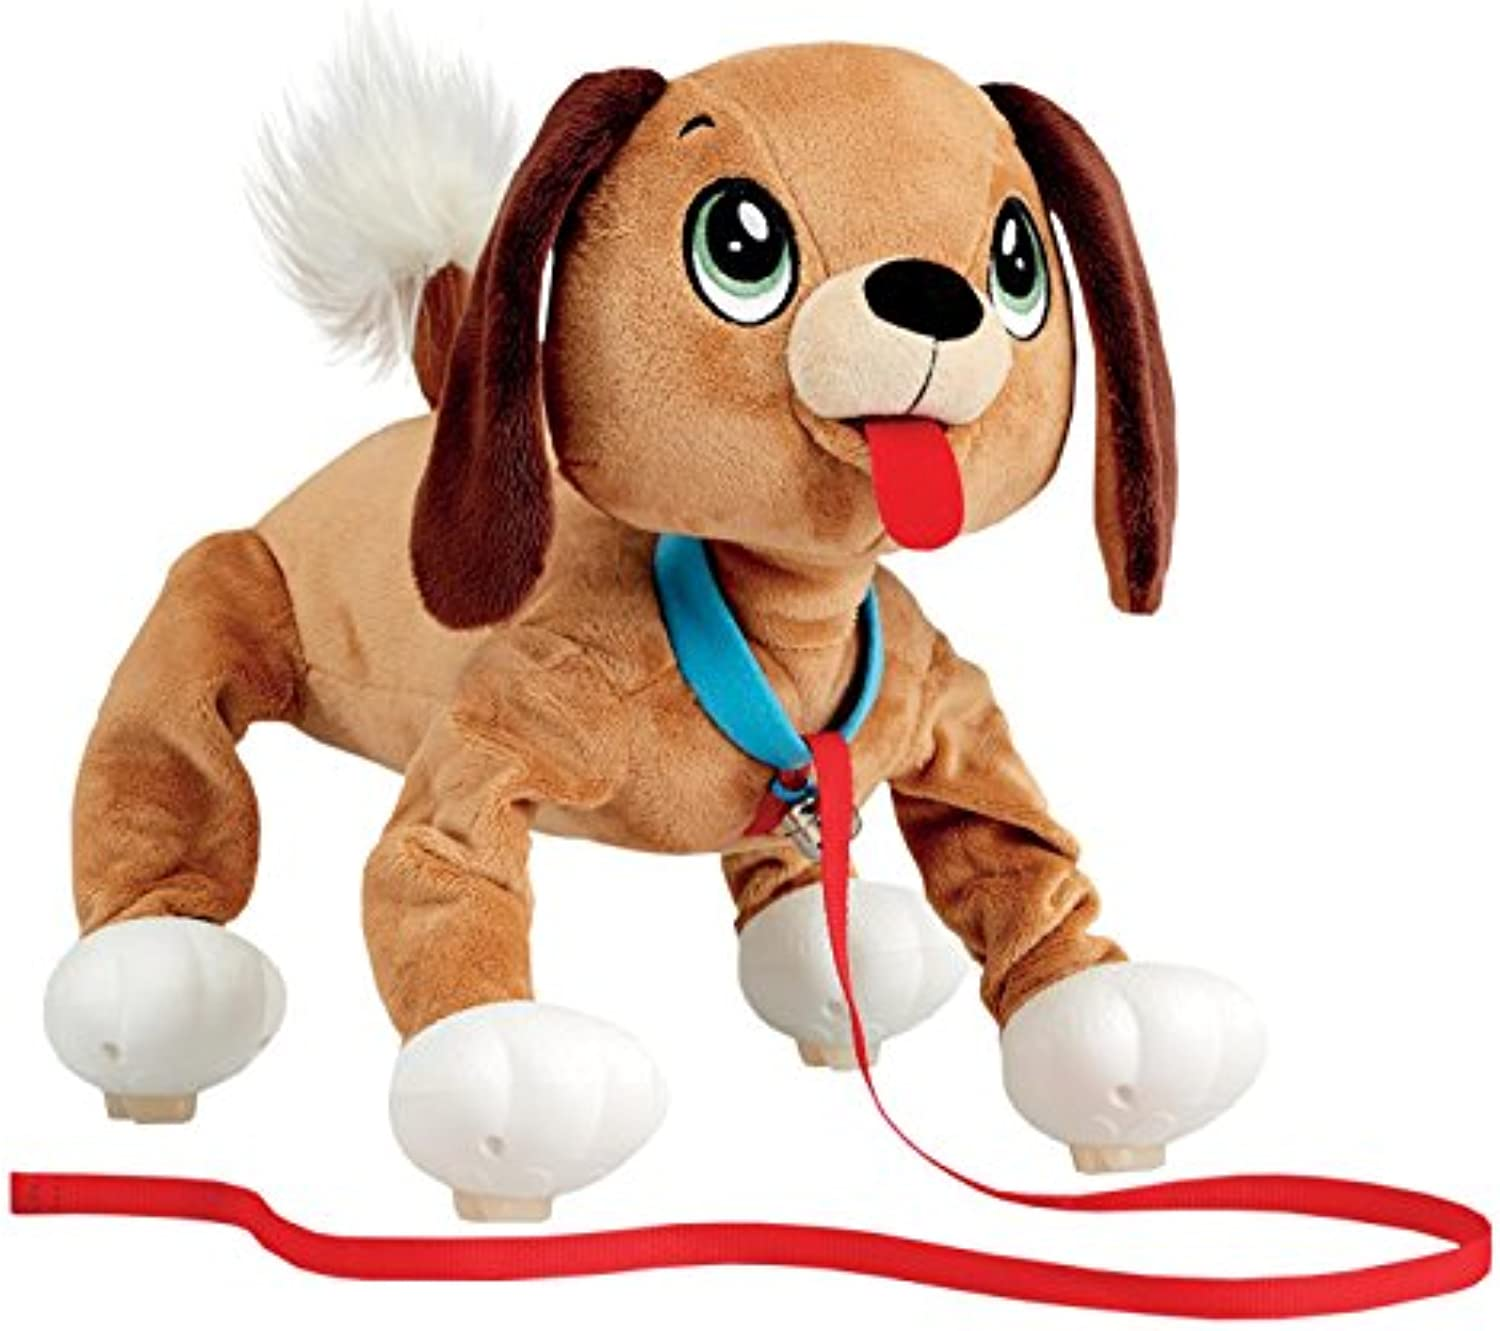 Peppy Pups - Stuffed Plush Dog That Walks Along With You - Kid Powerot Dog Toy Includes Collar and Leash by Peppy Pups